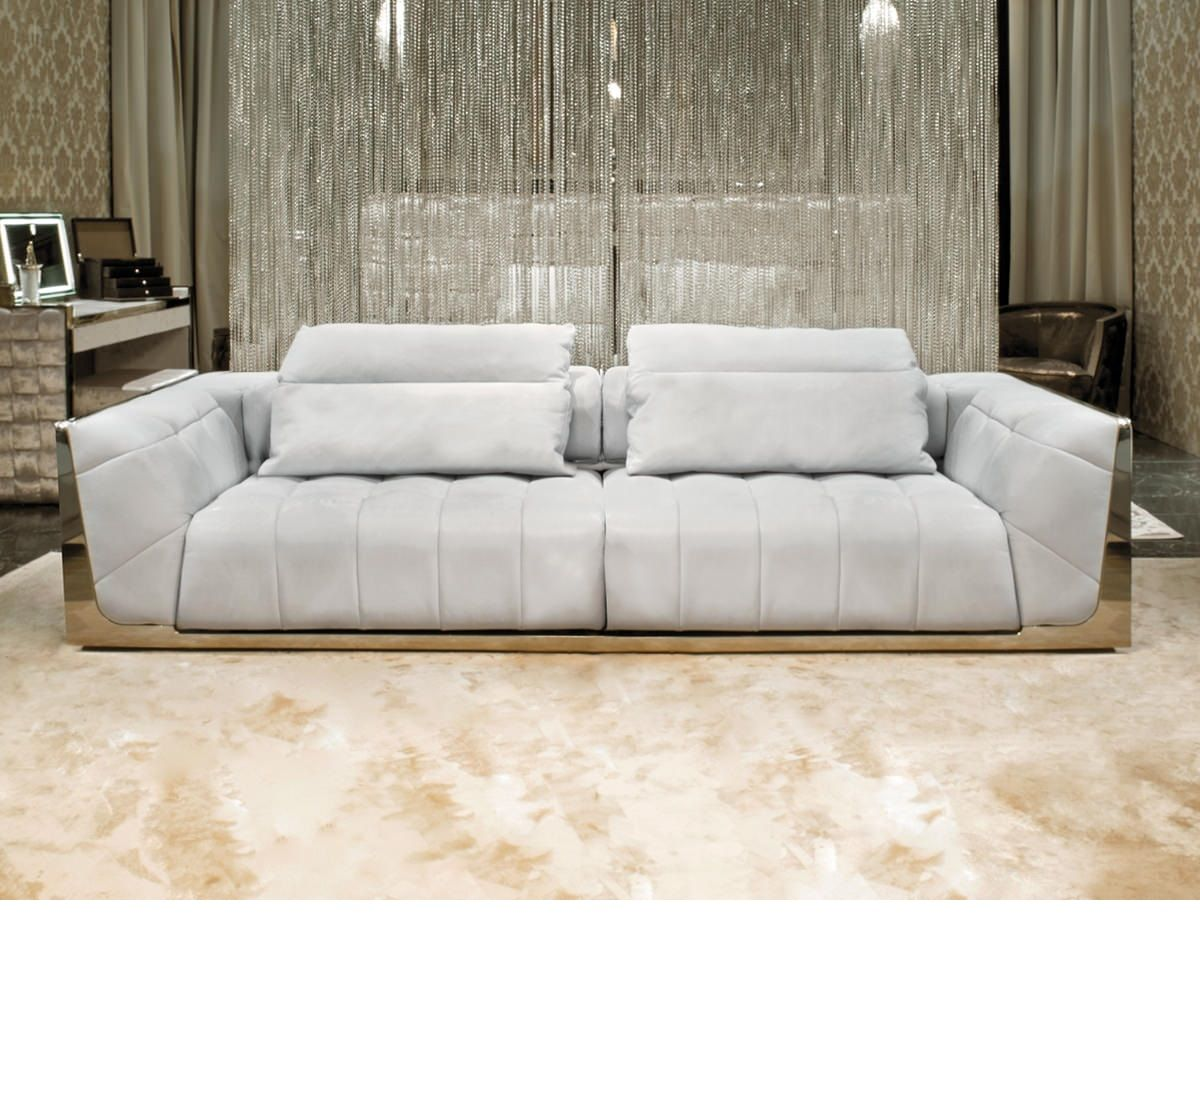 Luxury Lighting Luxury Furniture Luxury Home Decor Luxury Sofa Luxury Living Room Luxury Couch